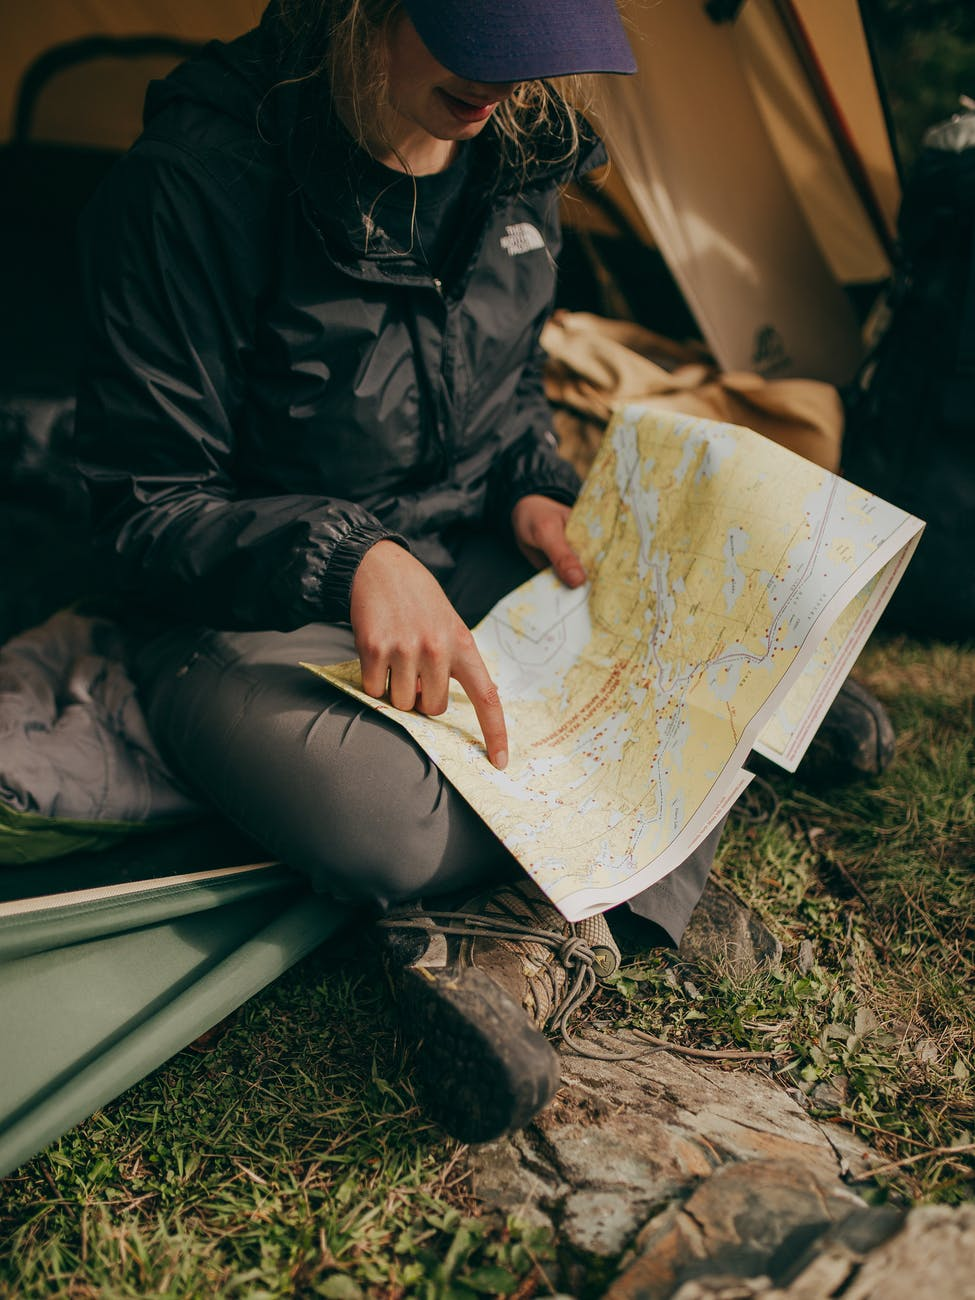 Camper looking at paper map planning next day's journey